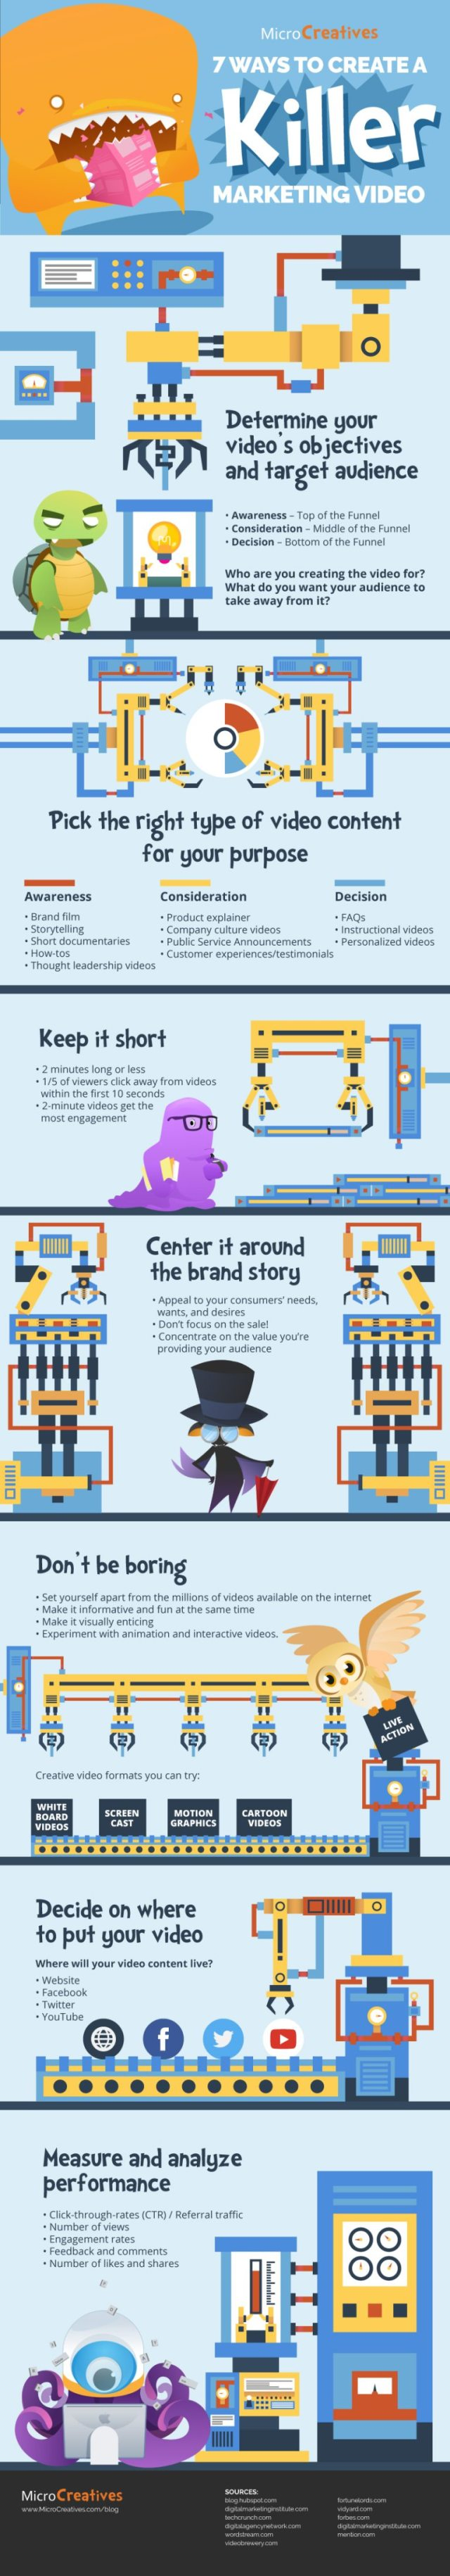 7 Steps to Create a Killer Marketing Video Infographic